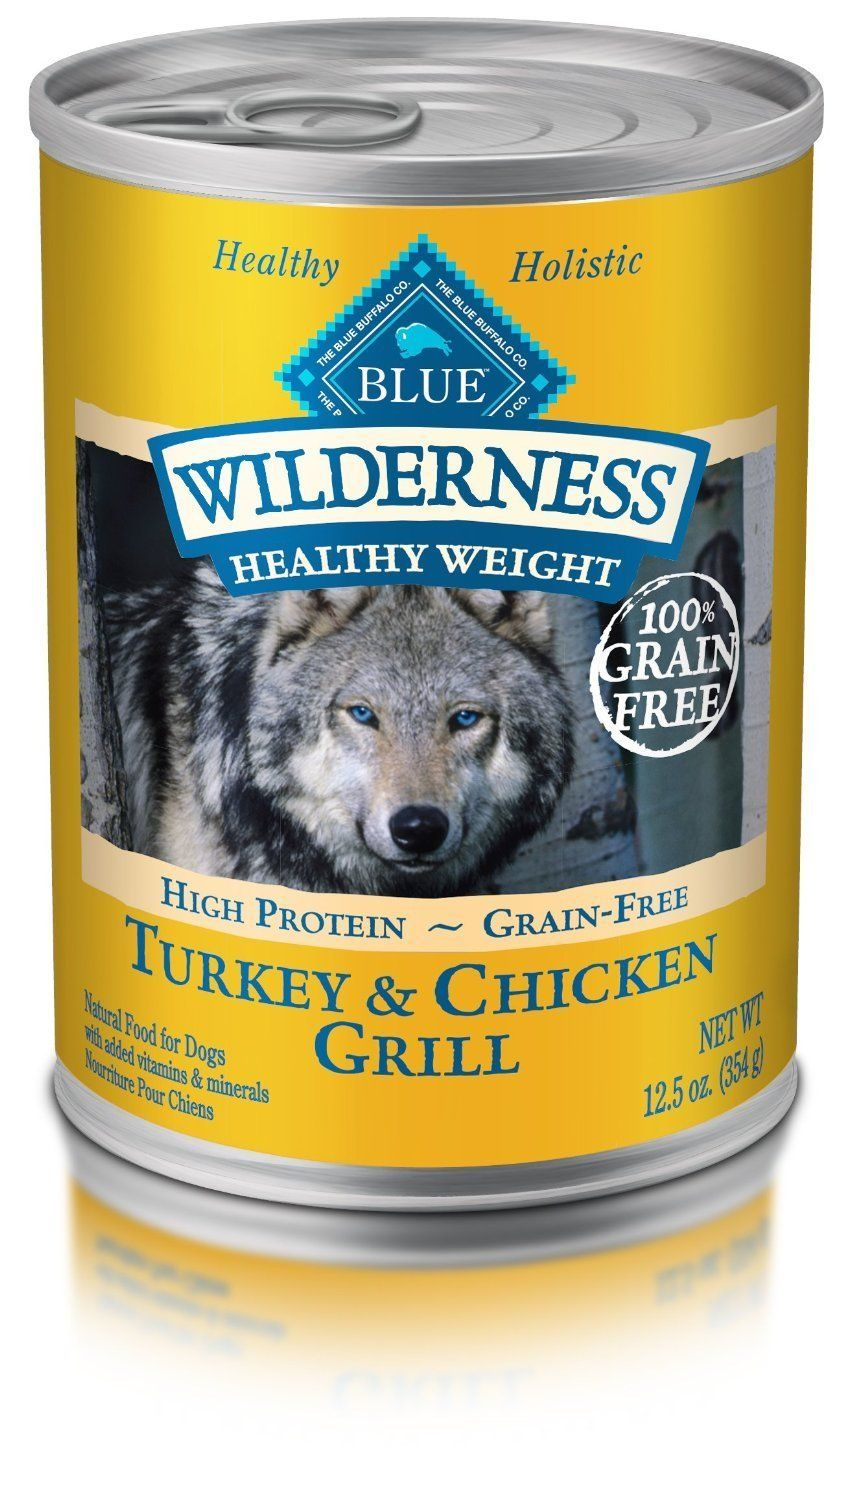 Pack of 12125 oz proteinrich grain free turkey and